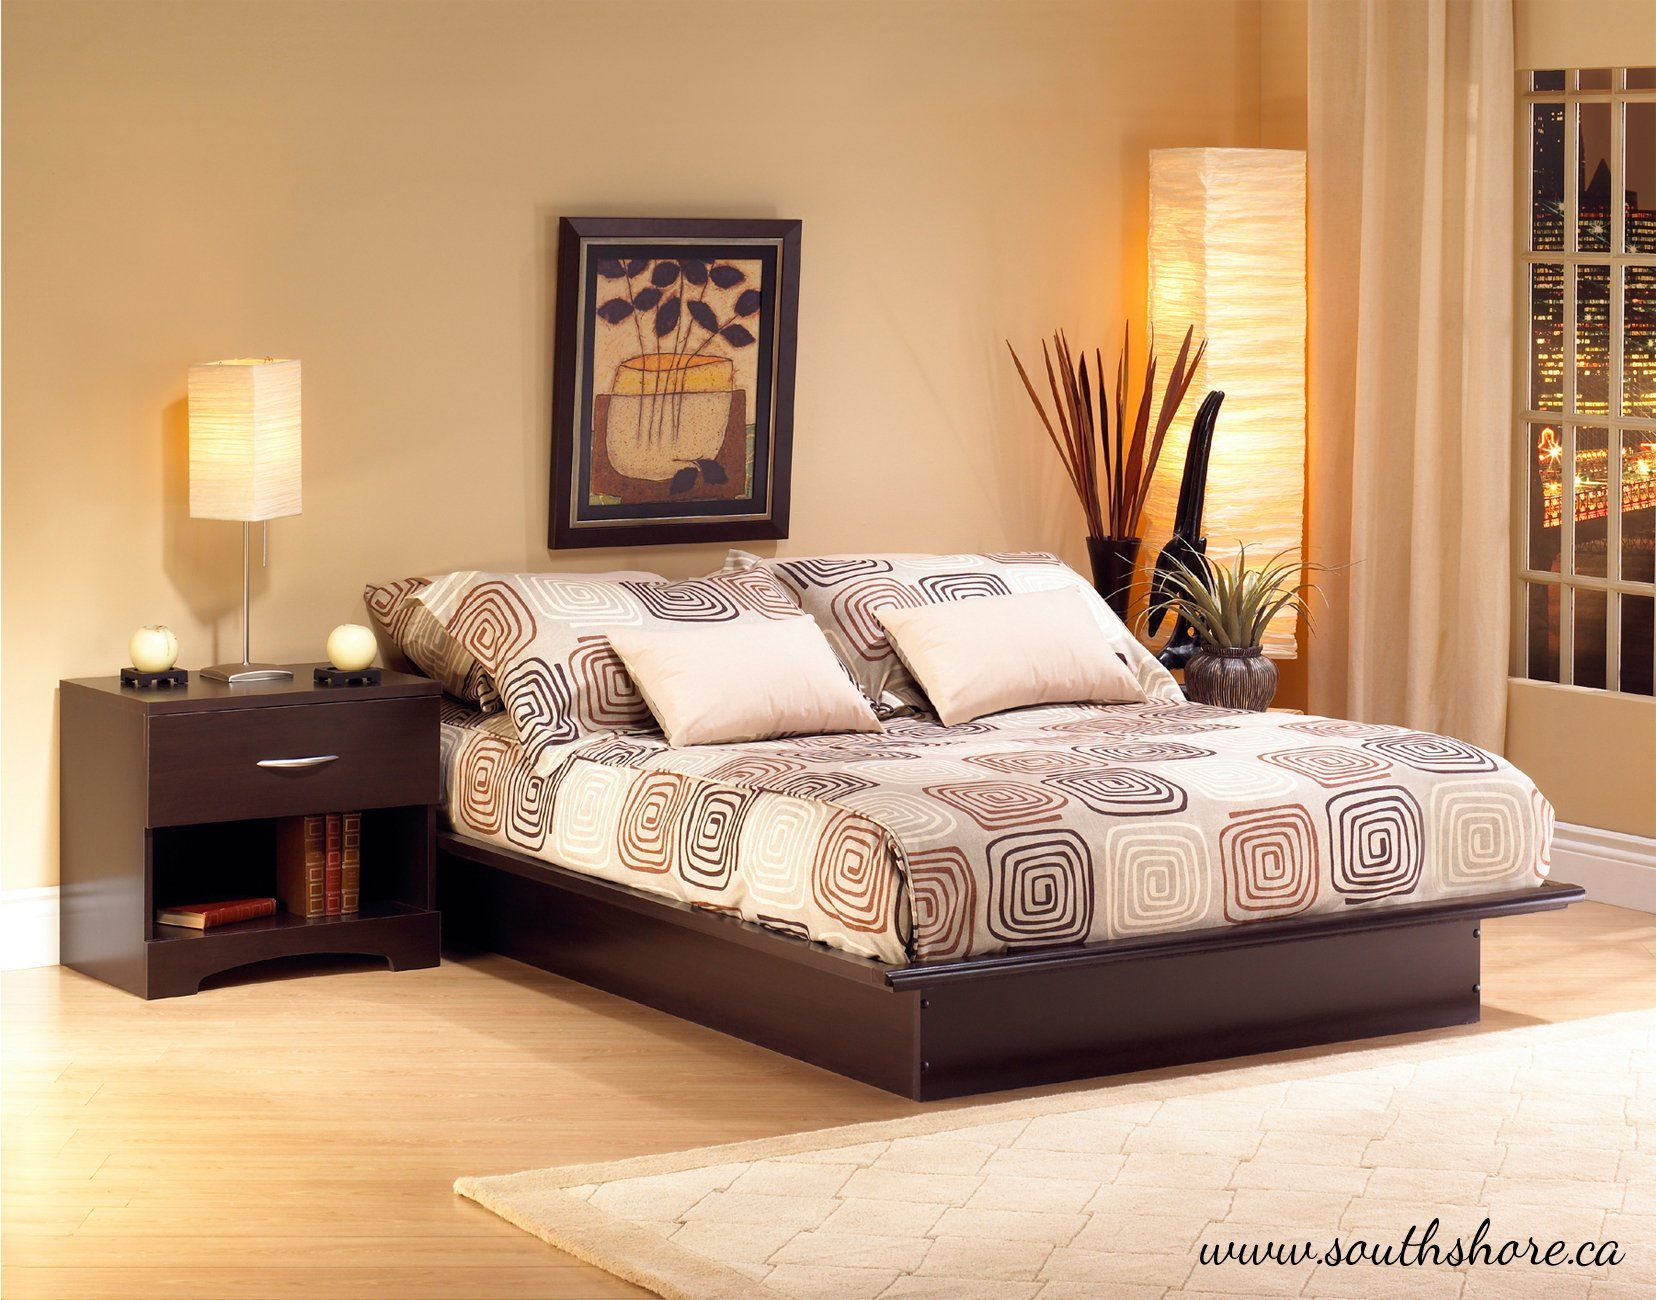 Amazon.com - South Shore Furniture Step One Collection Queen Platform Bed, Chocolate - Queen Bed Frame